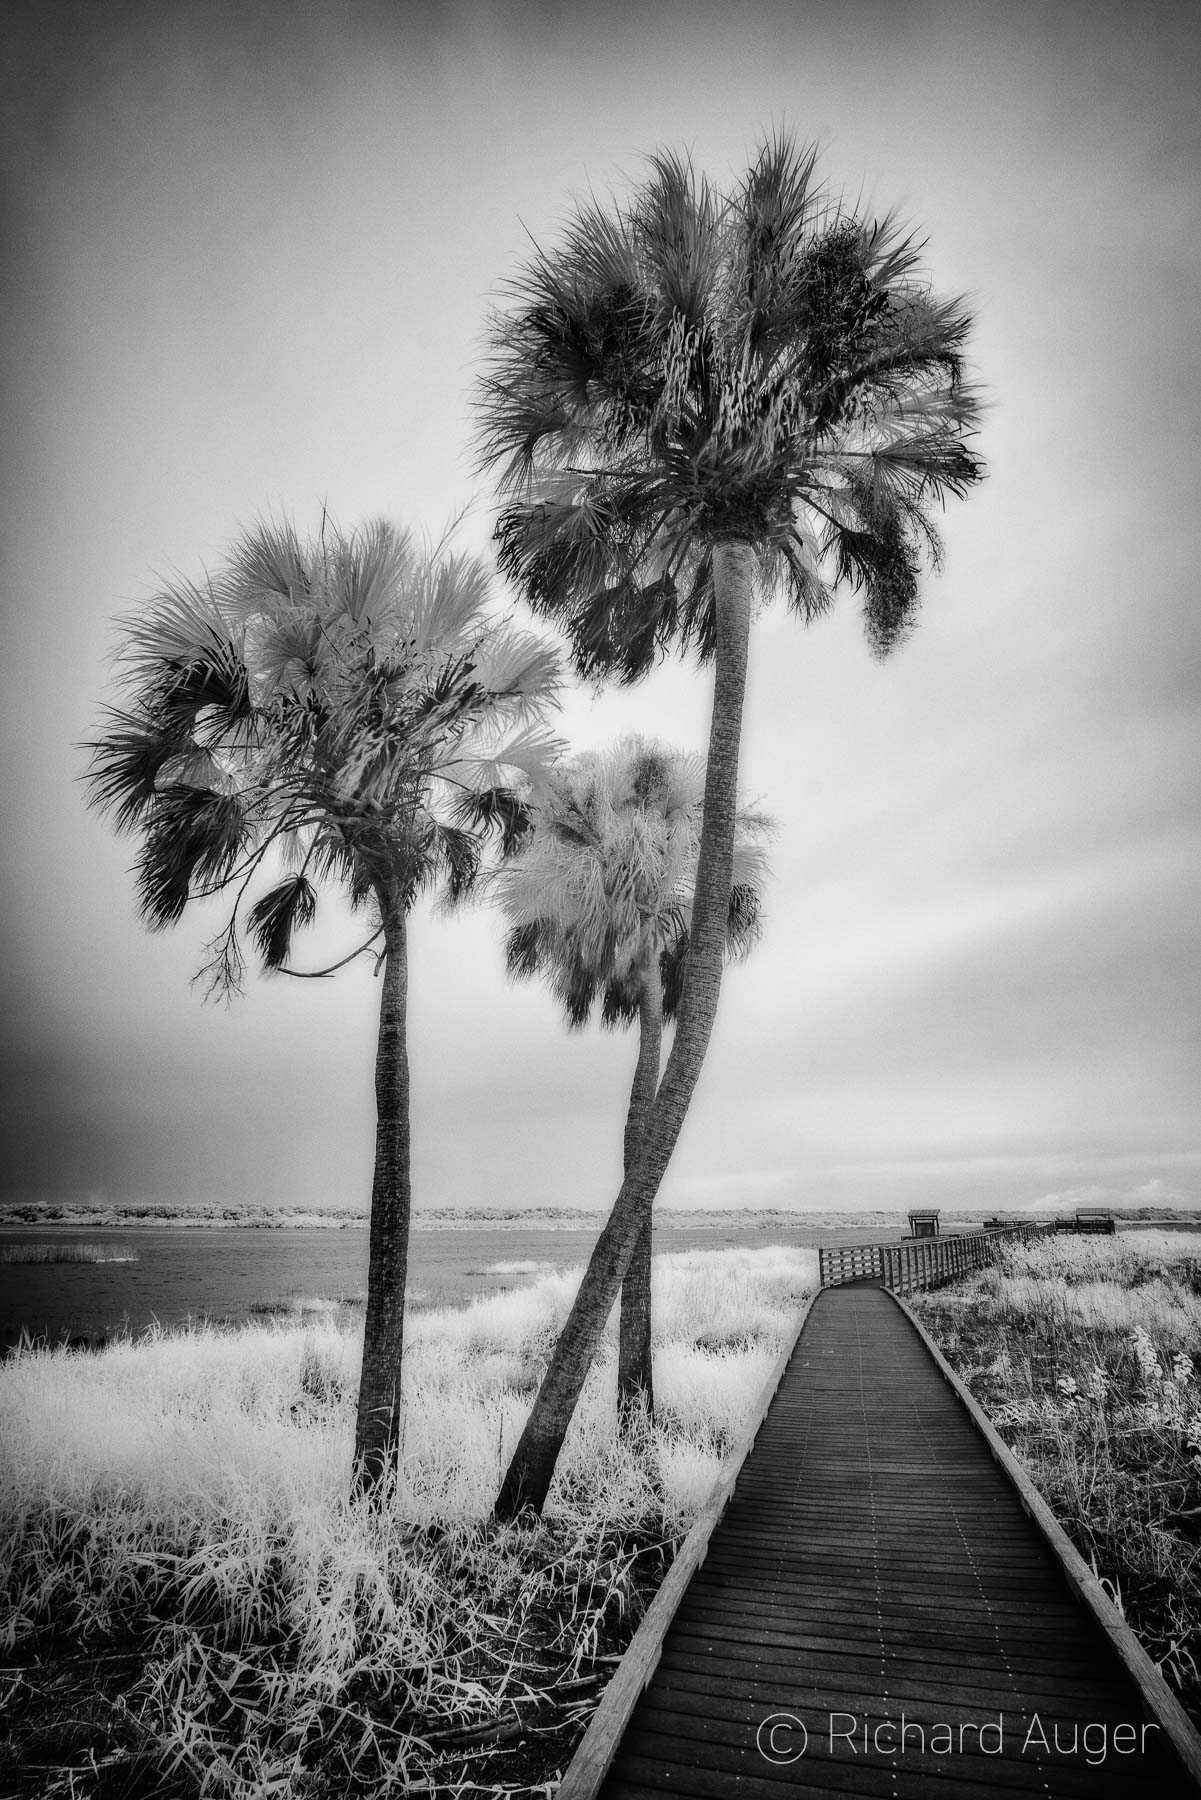 Myakka River State Park, Florida, Sarasota, Birdwalk, Palm Trees, Swamp, River, Black and White, Photograph, Landscape